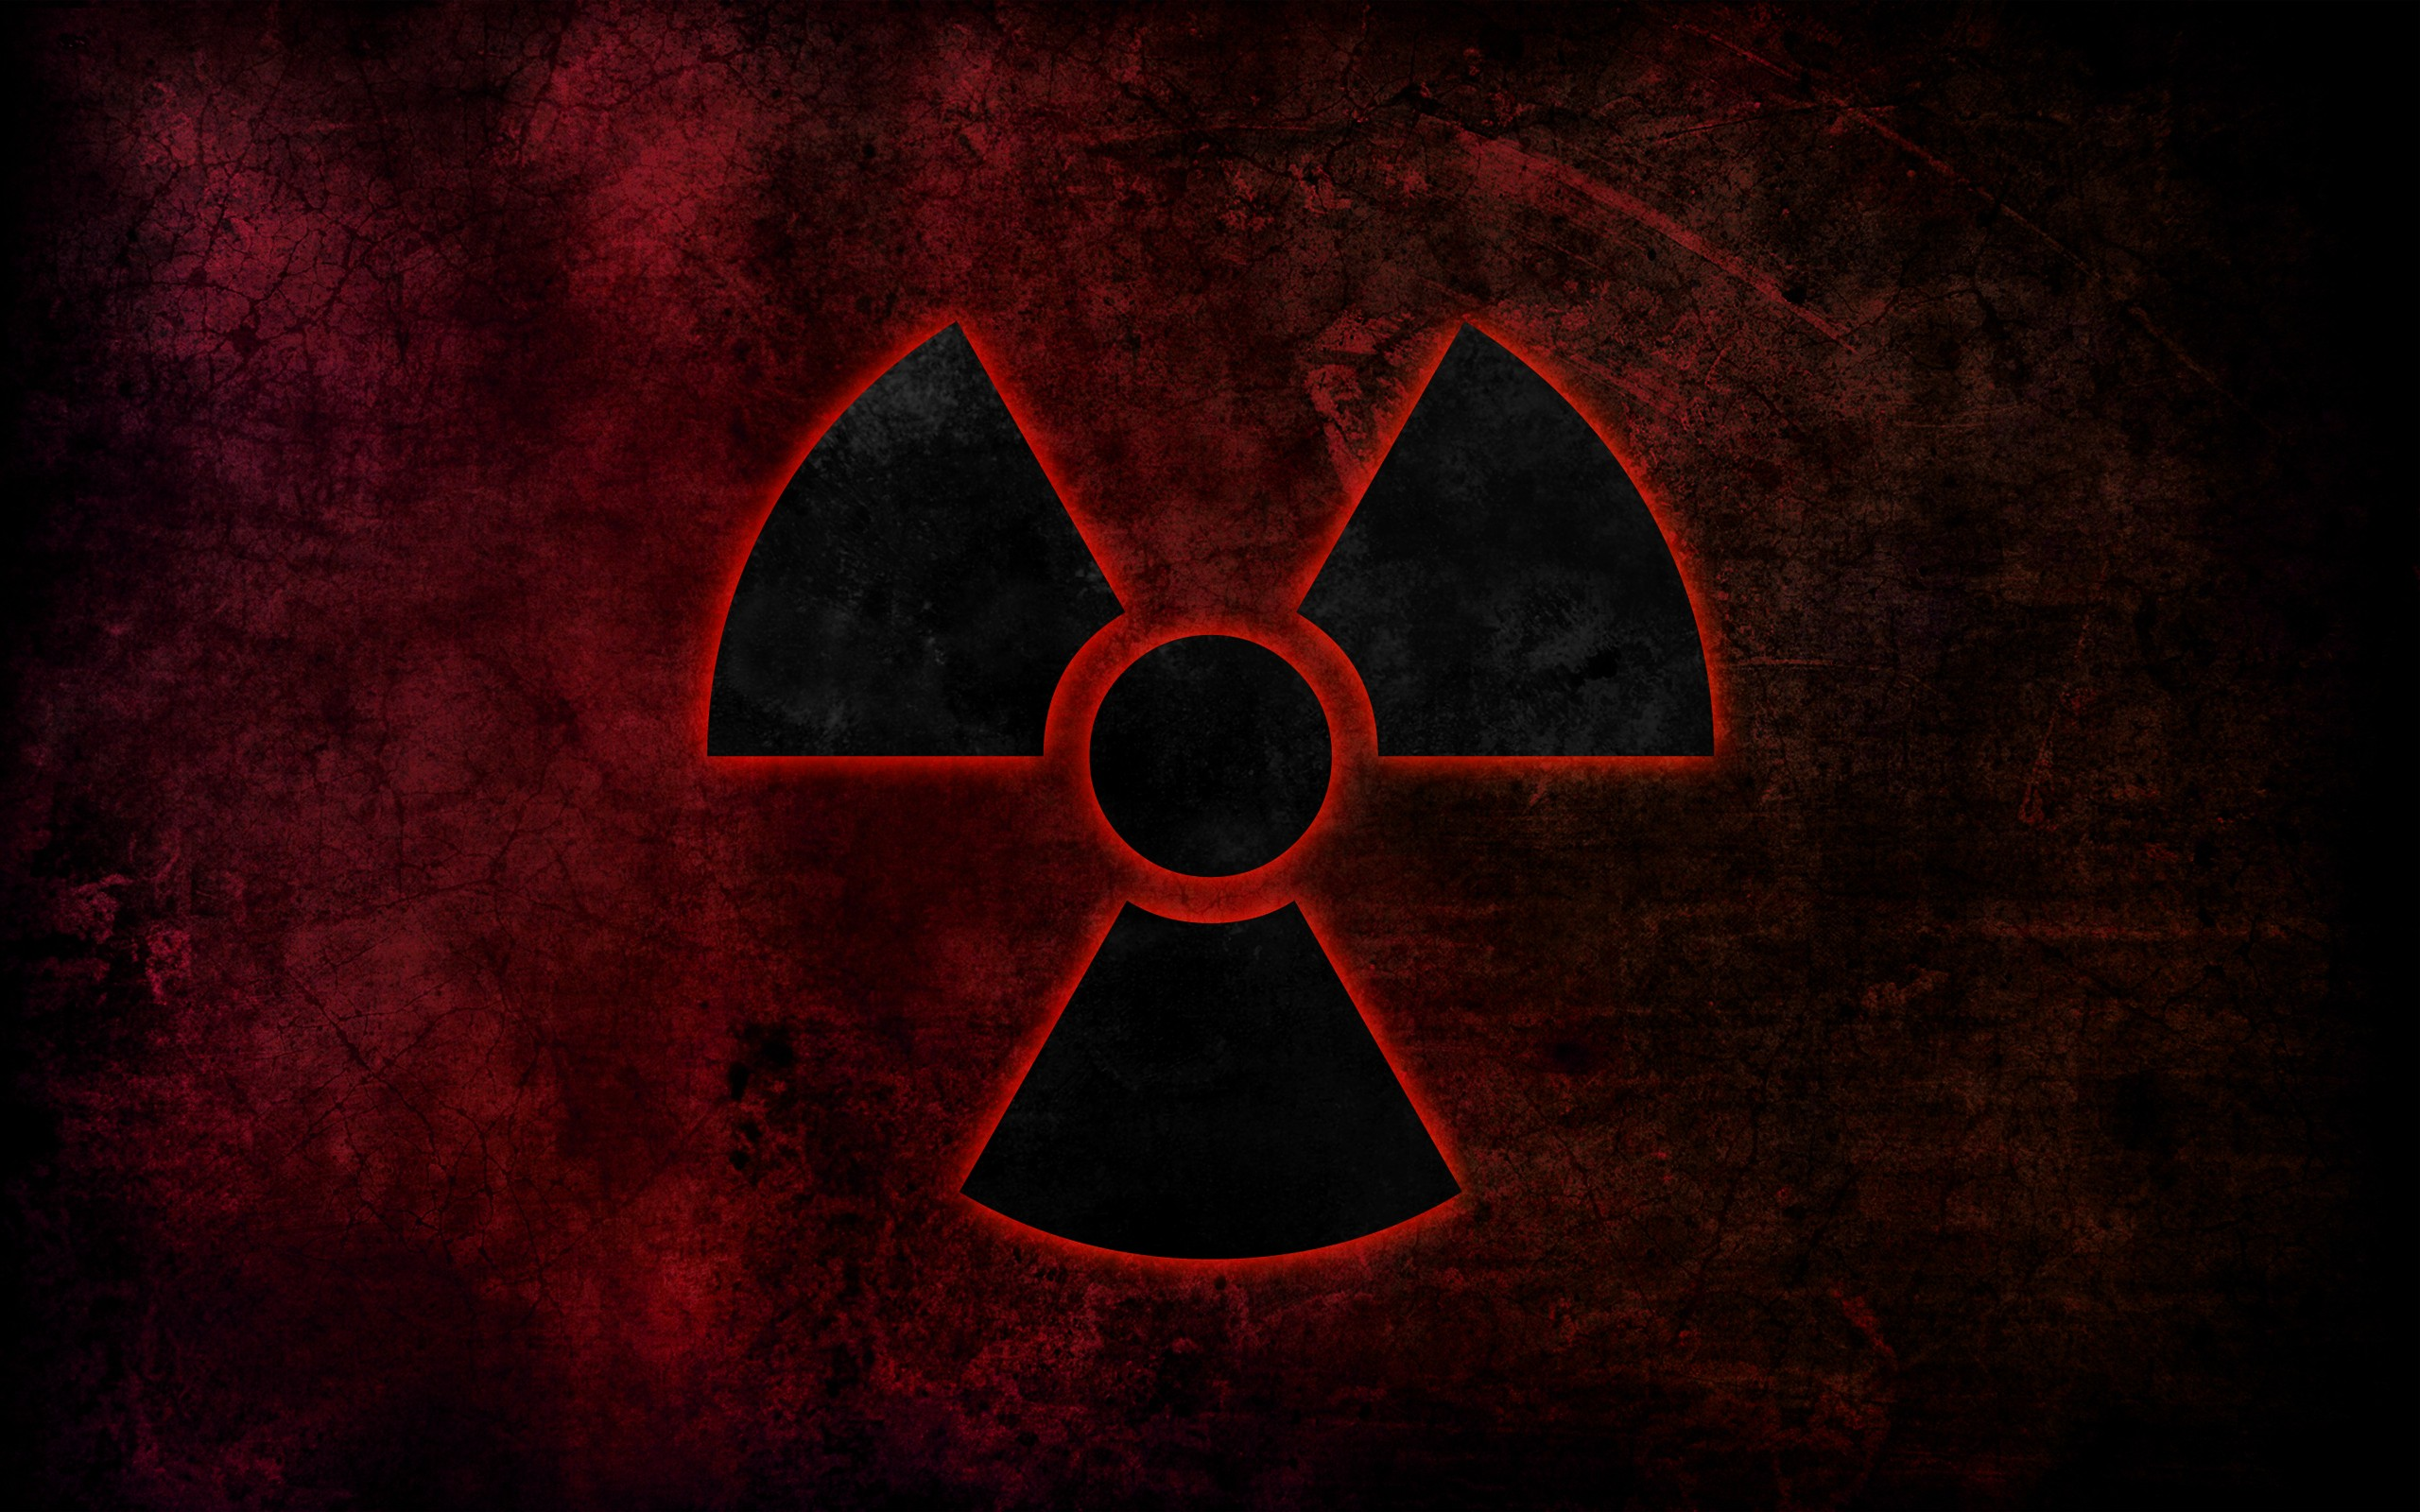 biohazard full hd wallpaper and background image | 2560x1600 | id:384718